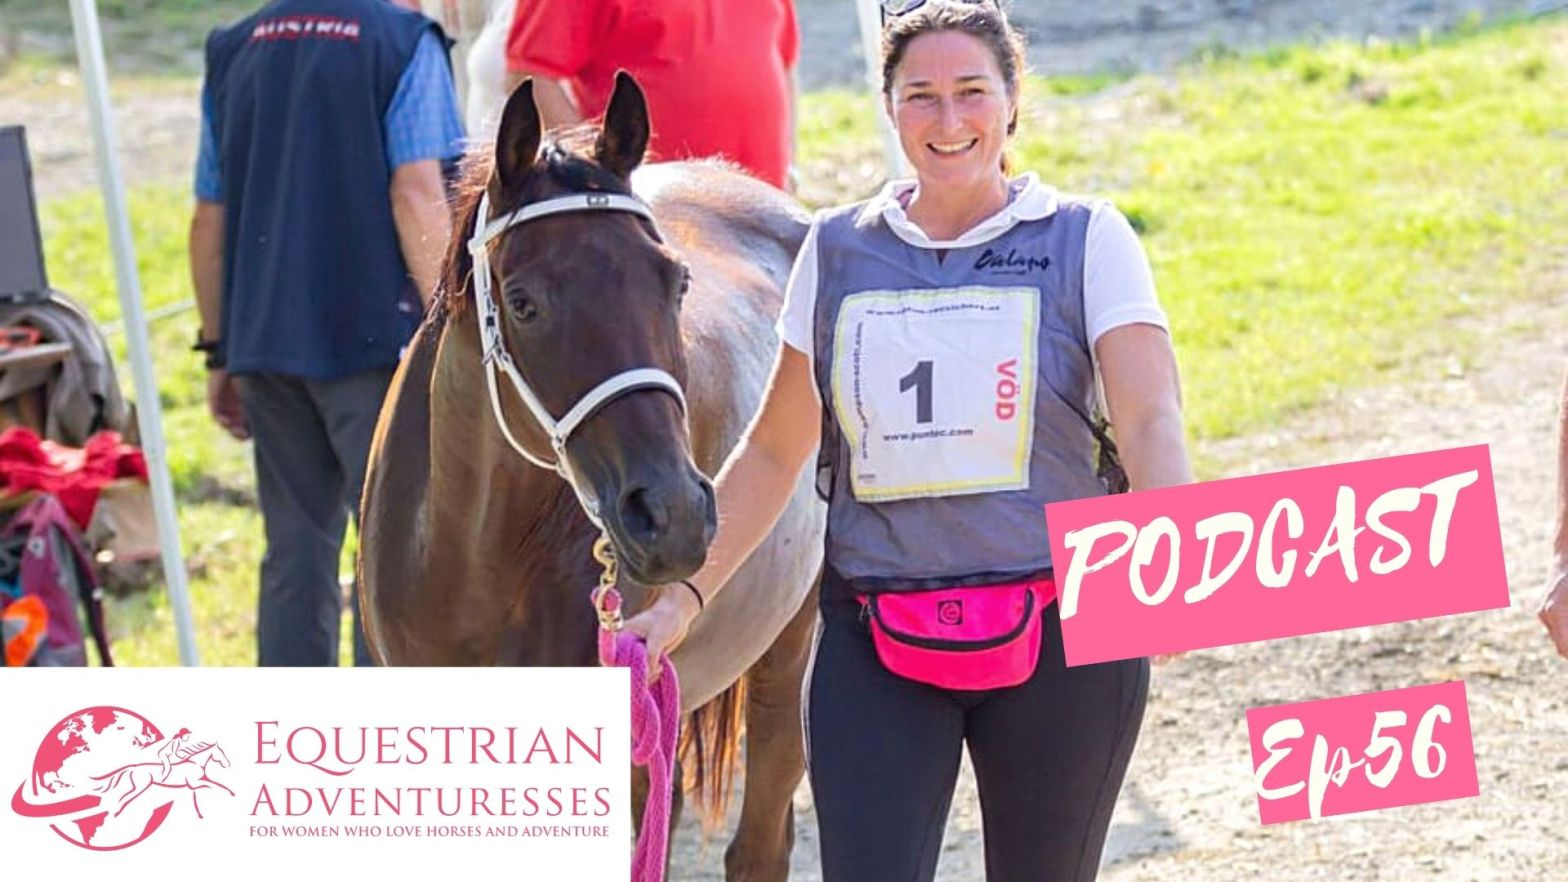 Equestrian Adventuresses Travel and Horse Podcast Ep 56 - From Horse Owner to Entrepreneur